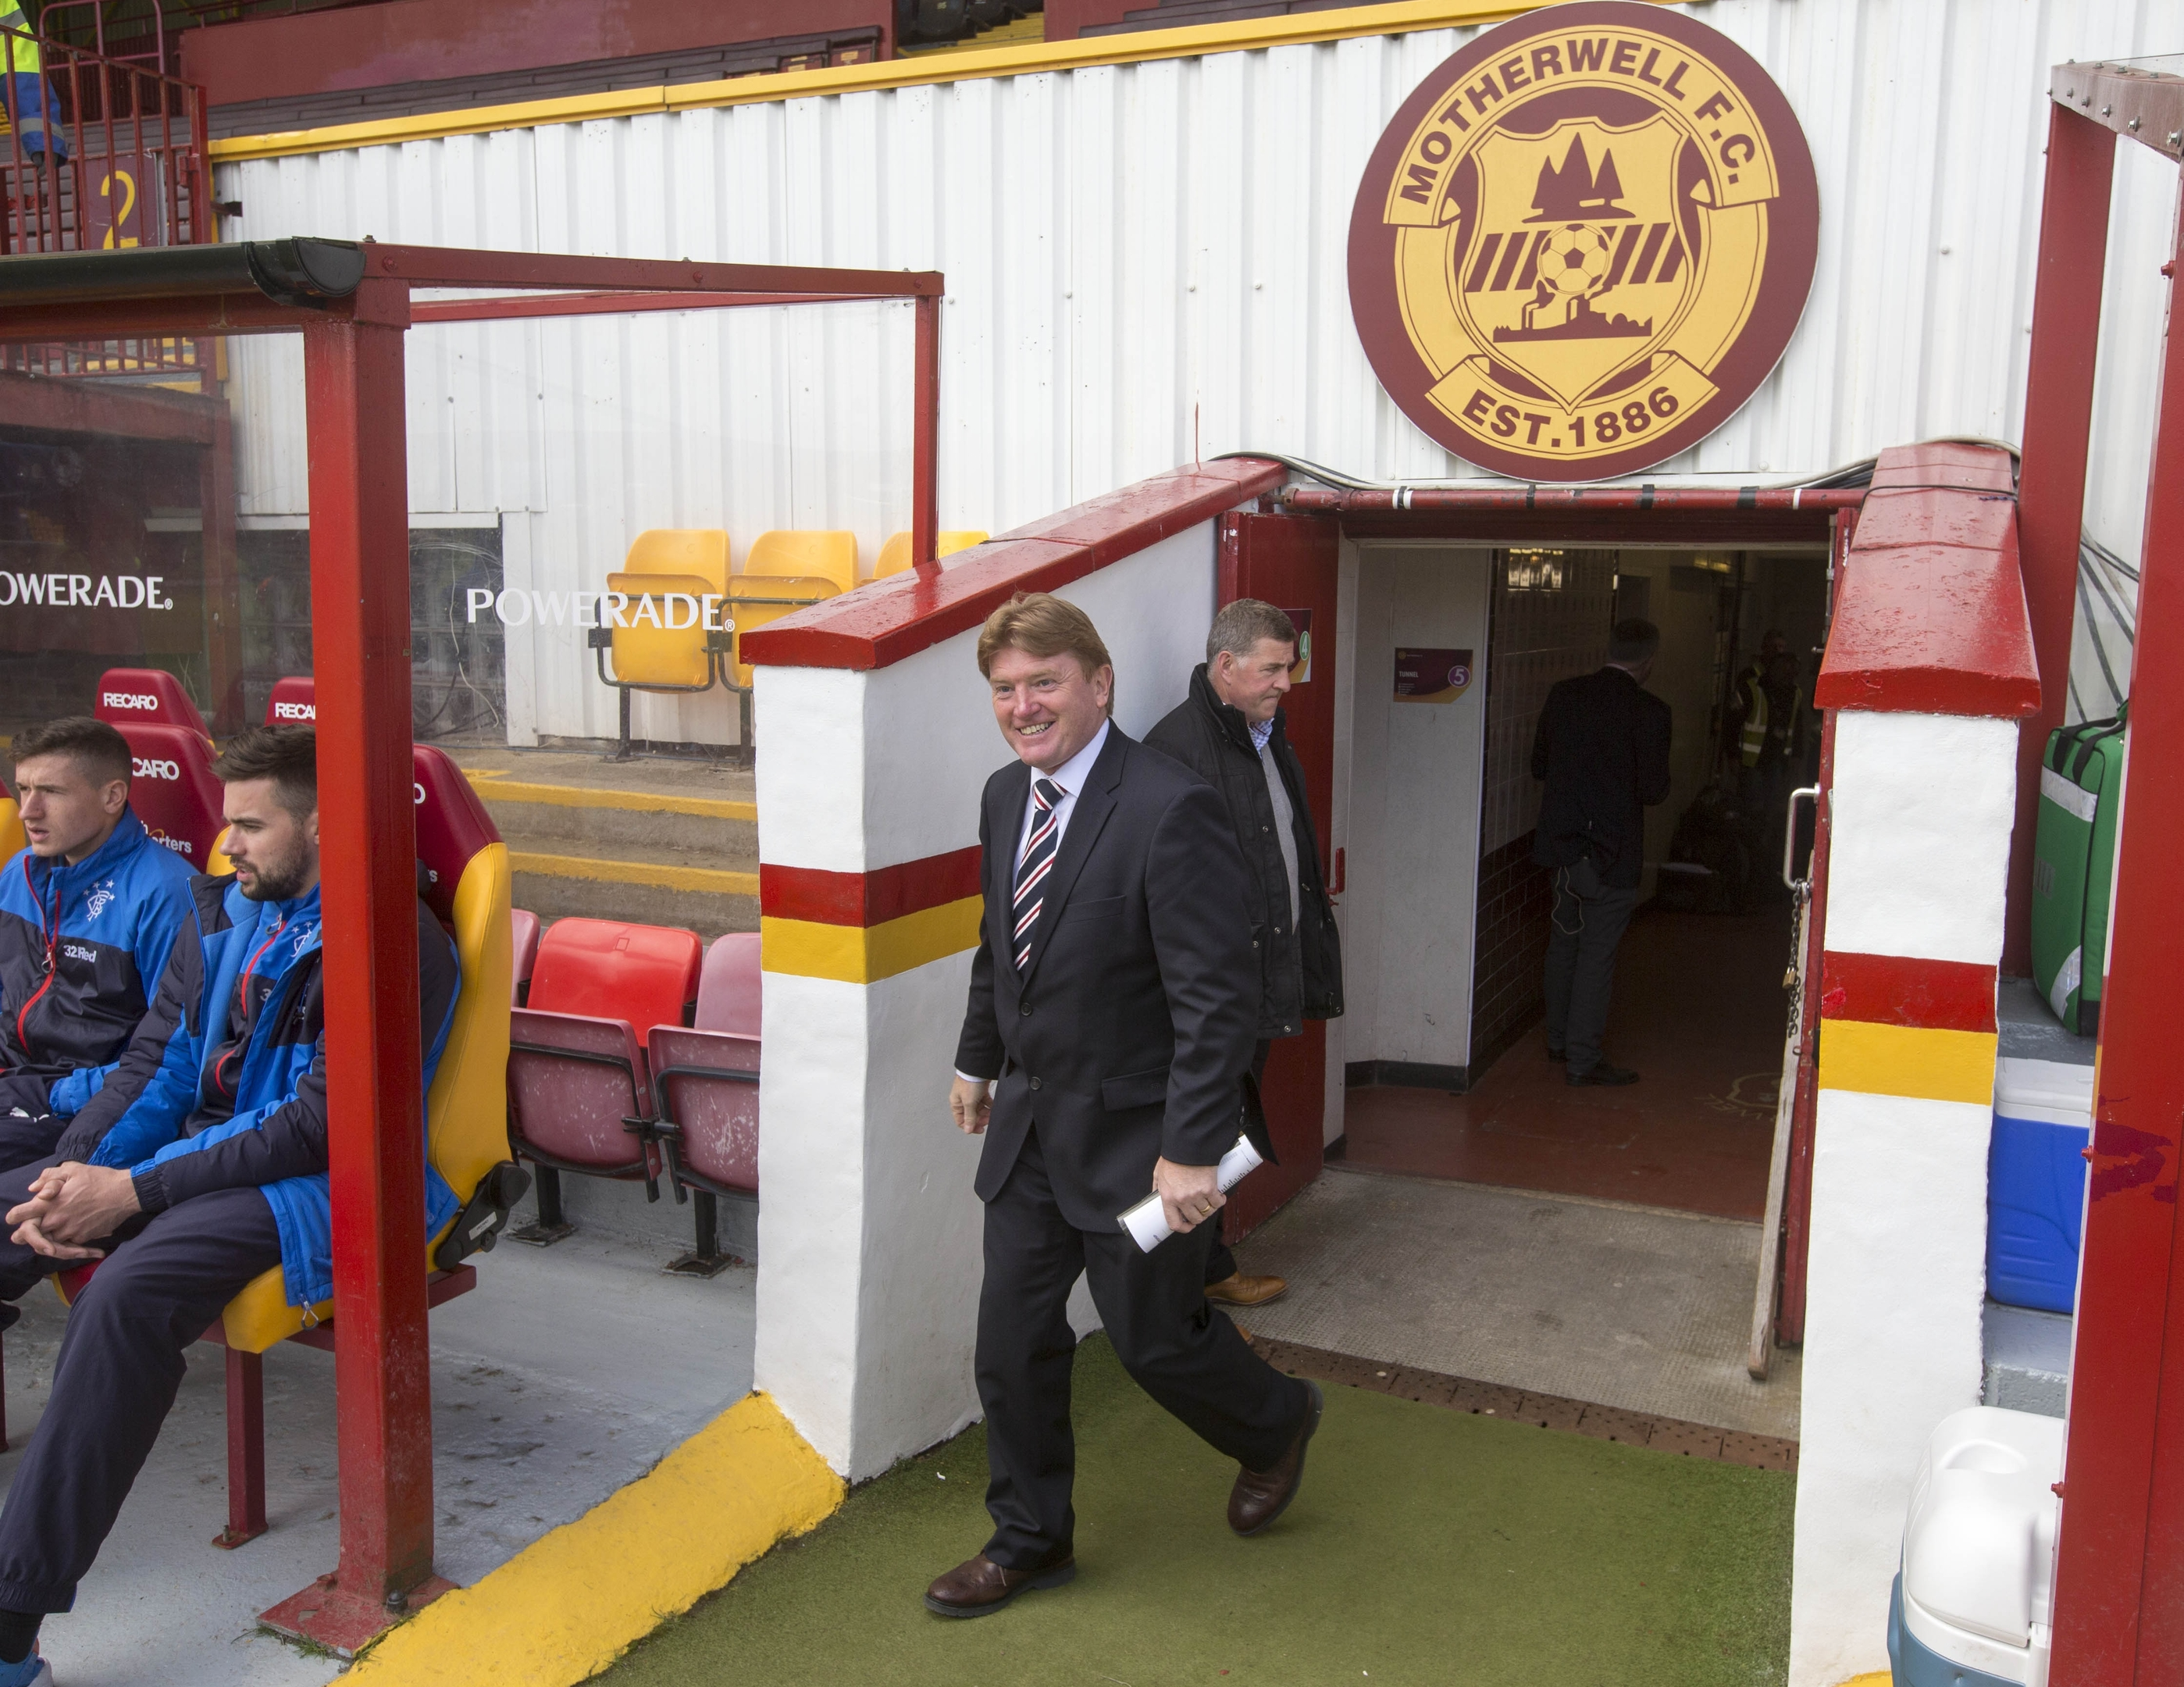 Rangers manager Stuart McCall arrives back at his old club ahead of the Scottish Premiership Play-off between Motherwell and Rangers